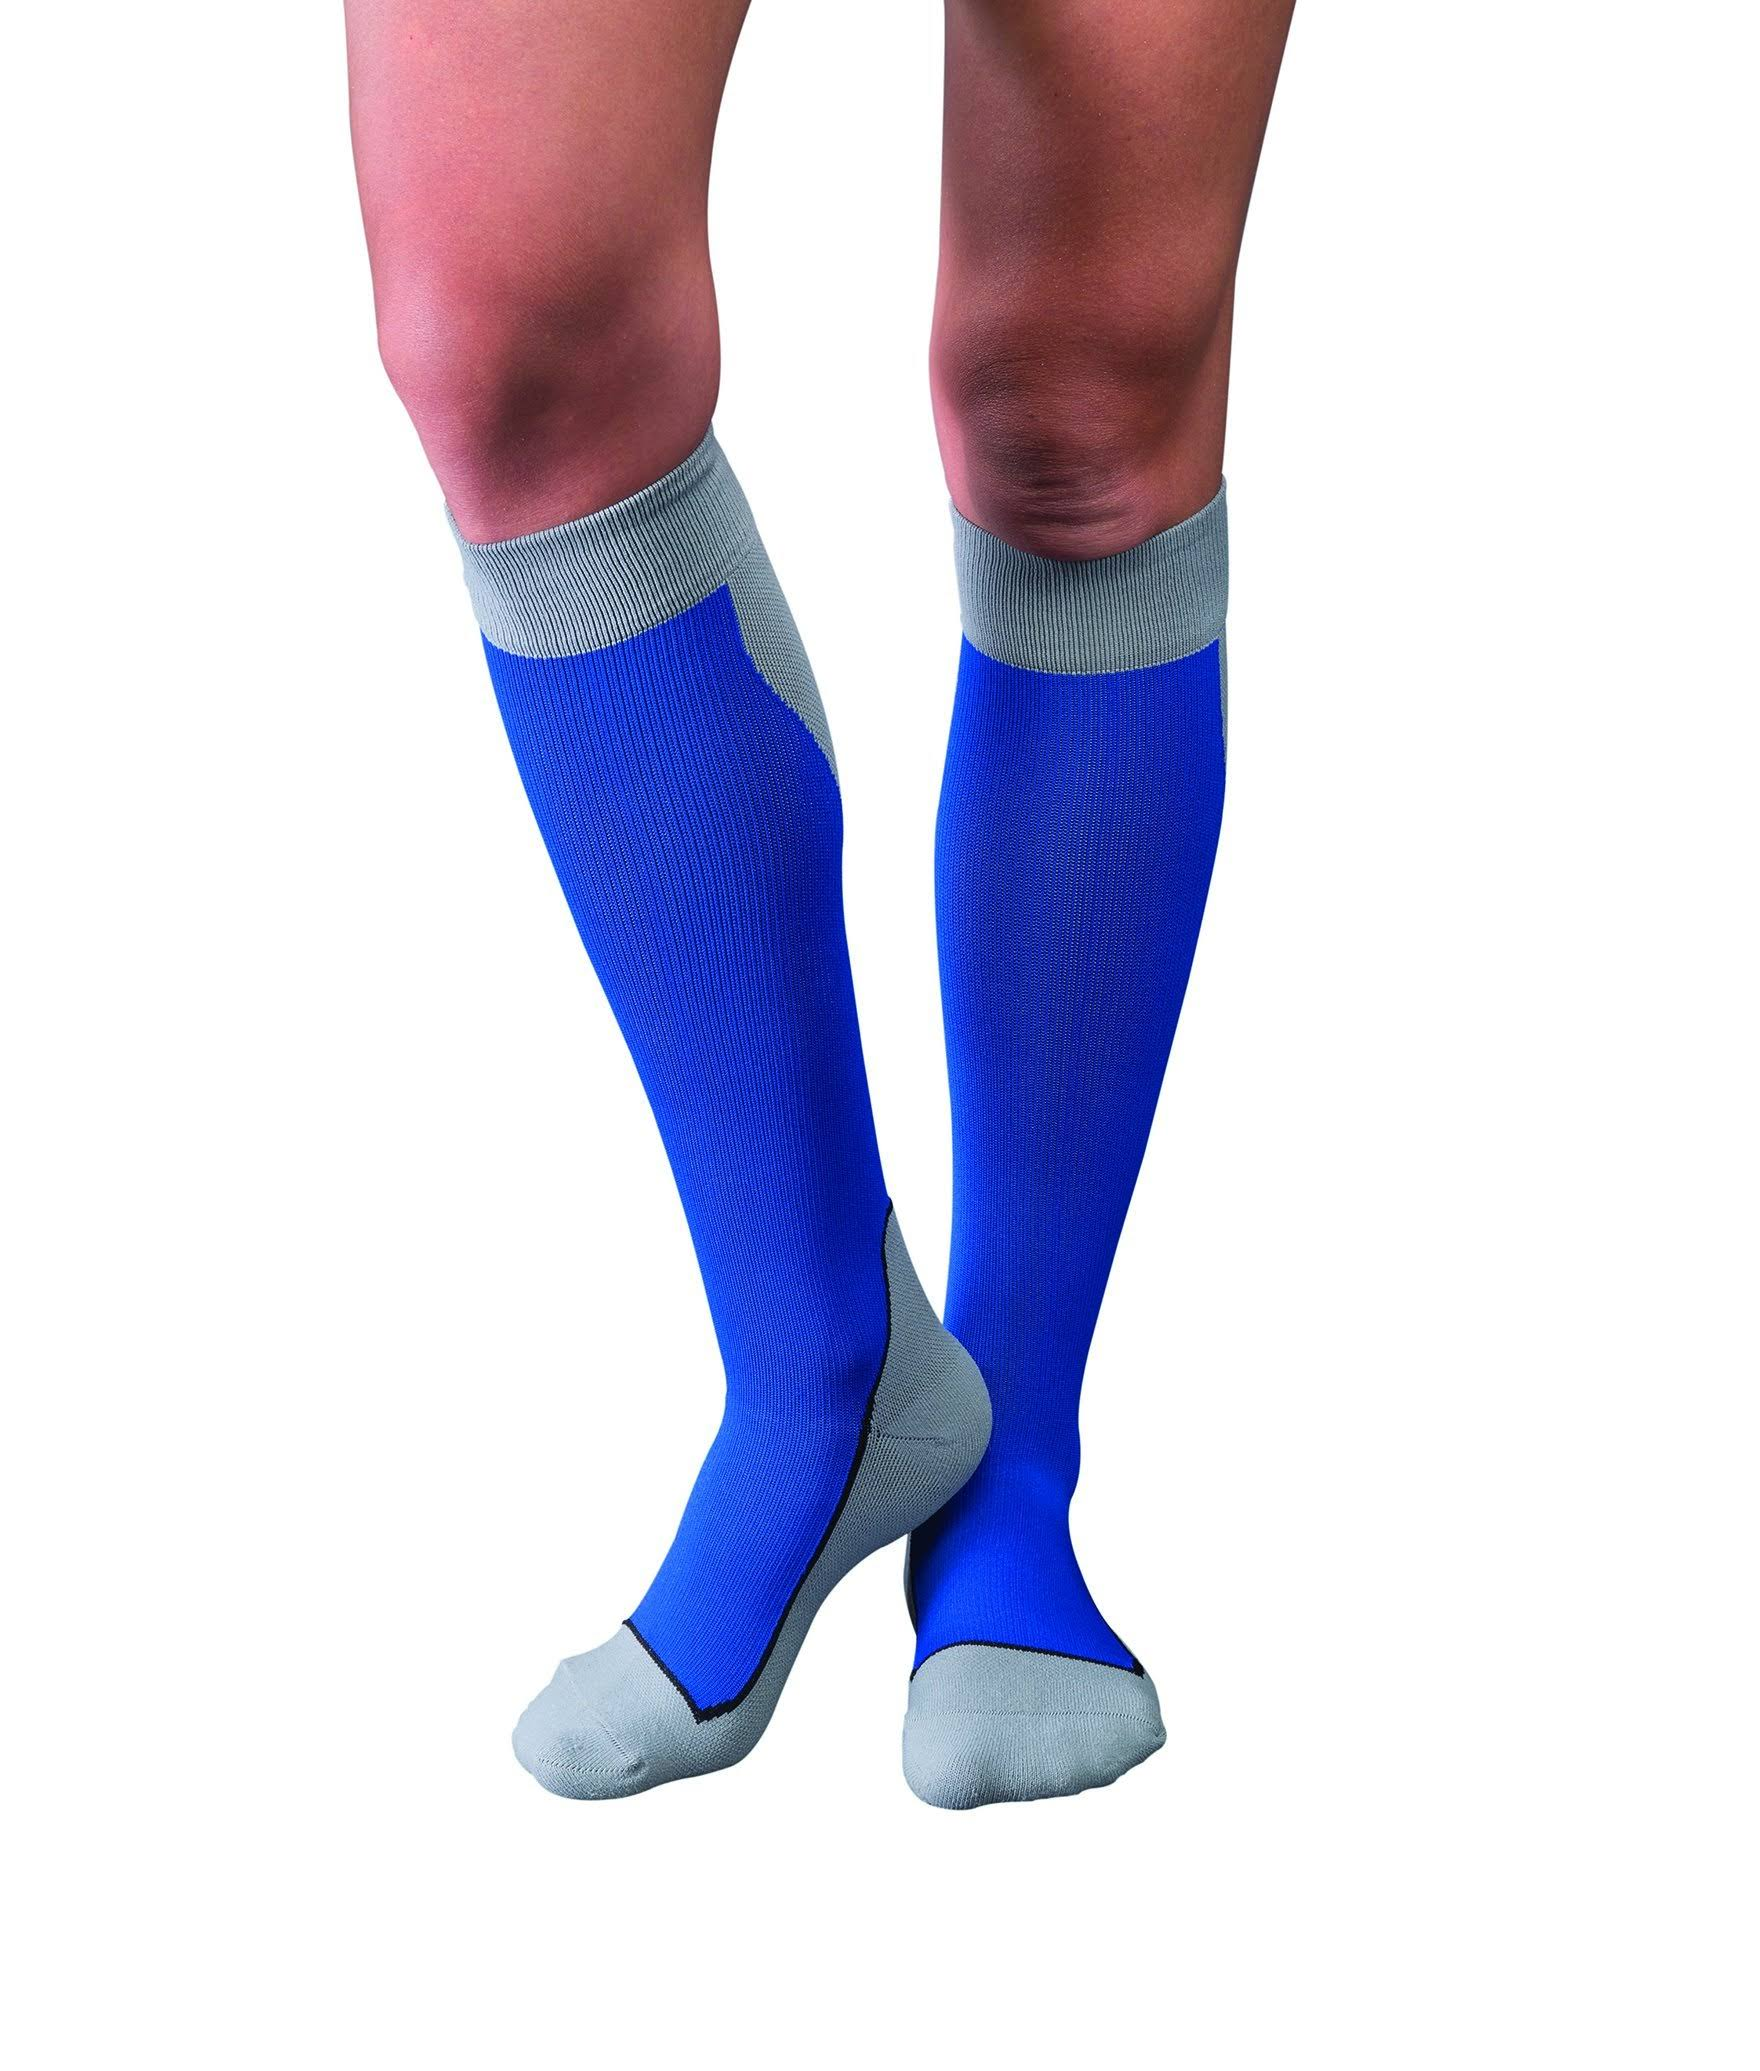 Jobst Sport 15-20 mmHg Knee High Socks Medium / Blue/Gray